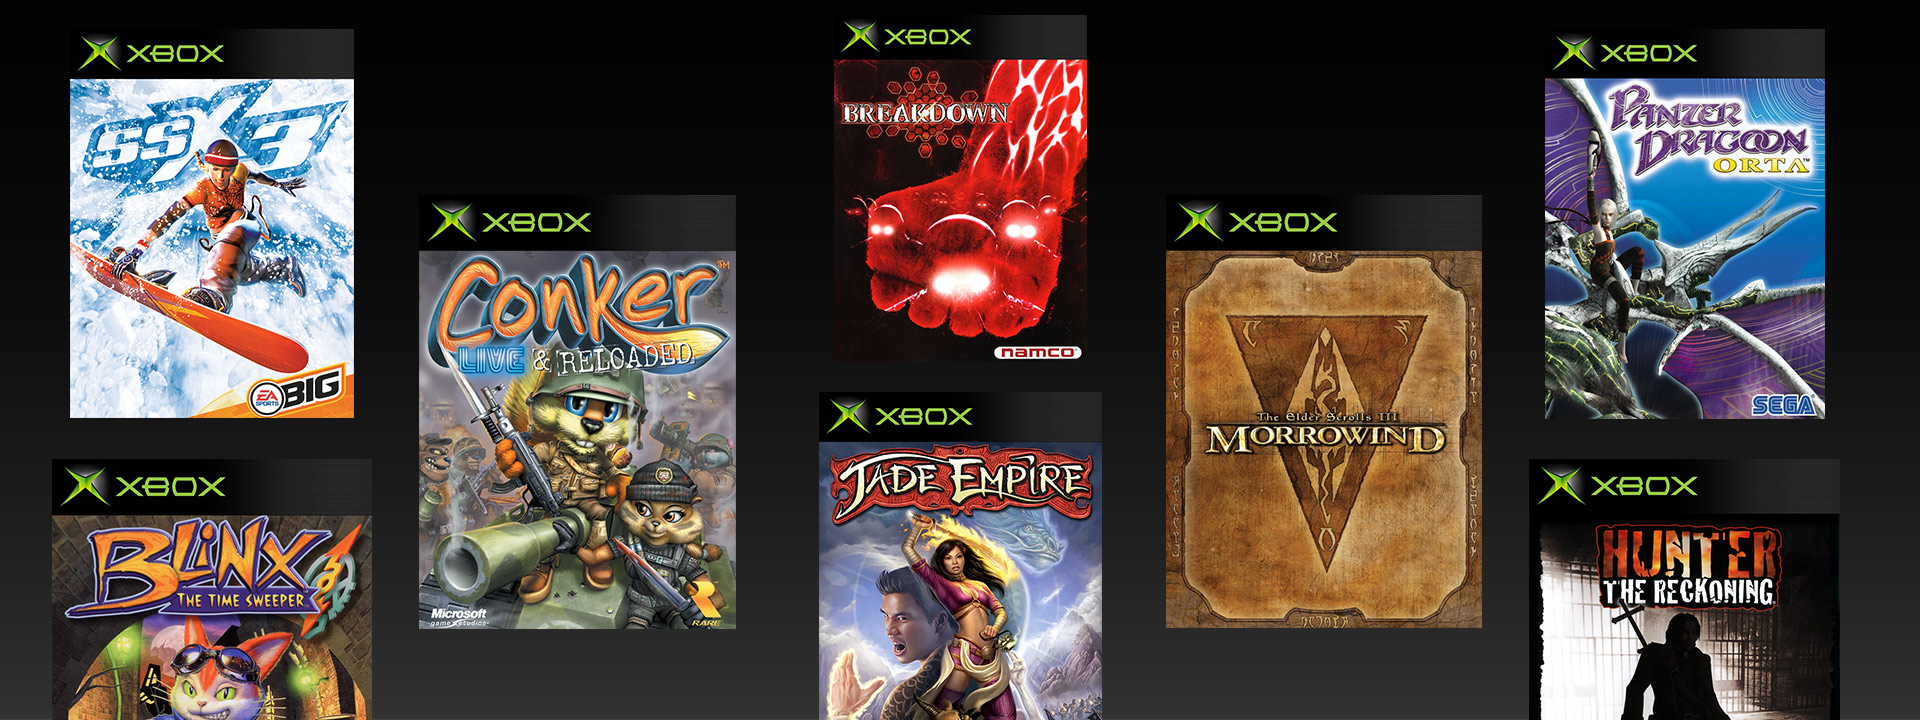 Original Xbox boxshots of SSX3 Blinx Conker Live & Reloaded Breakdown Jade Empire Elder Scrolls Morrowind Panter Dragon Hunter: the Reckonging